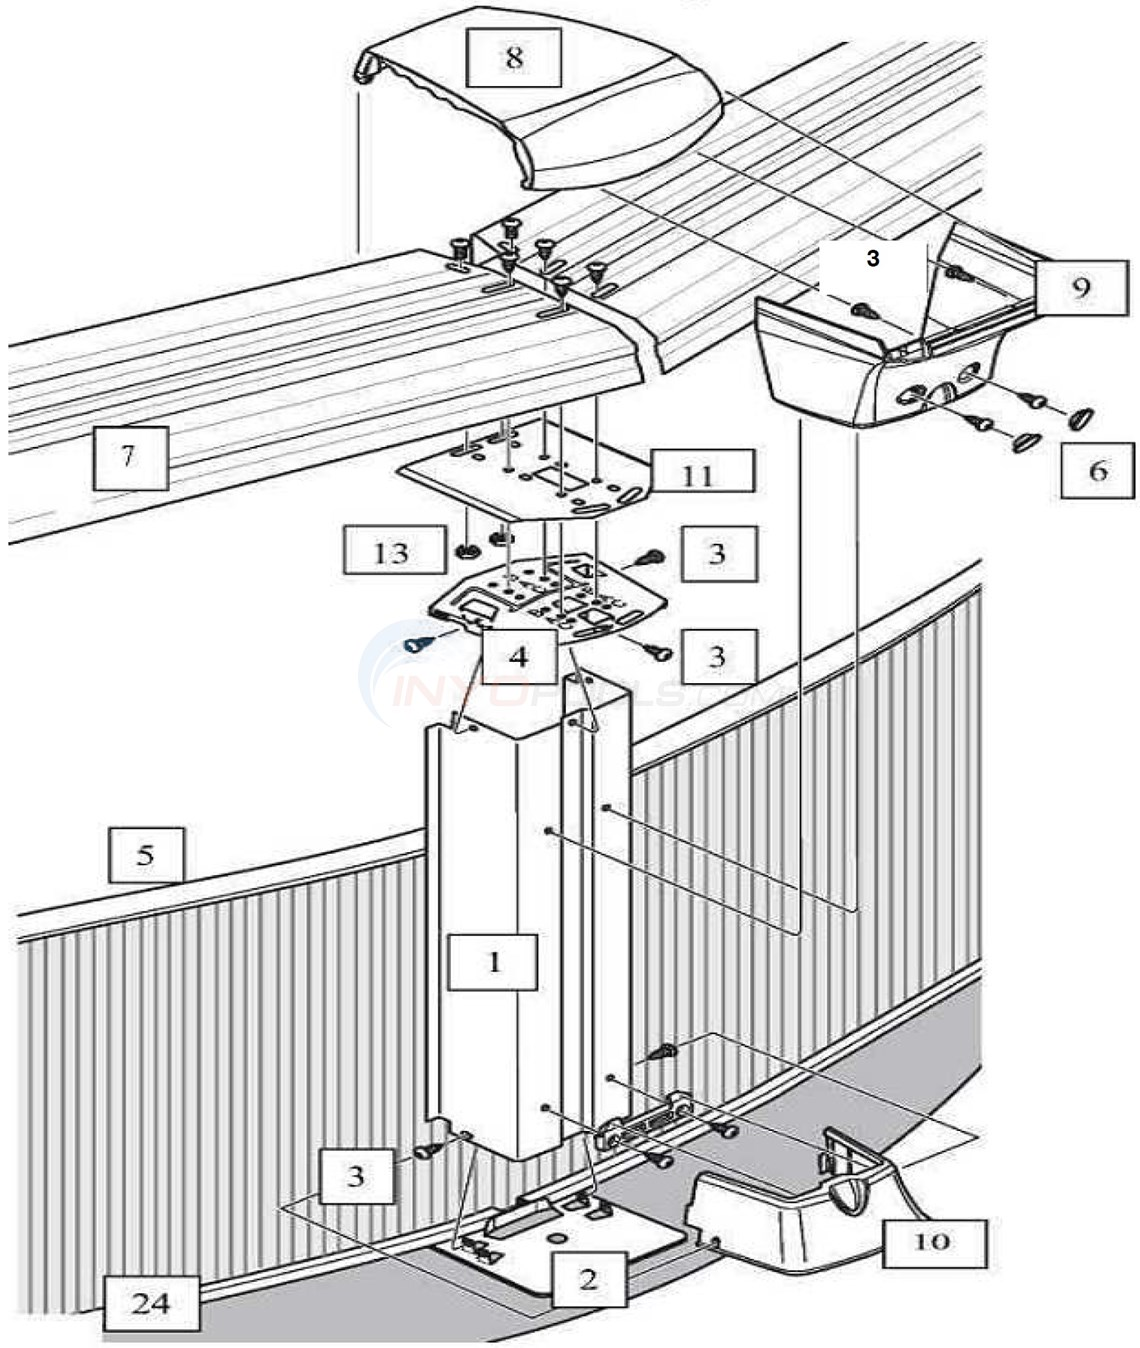 "Generation 33' Round 52"" Wall (Steel Top Rail, Steel Upright) Diagram"